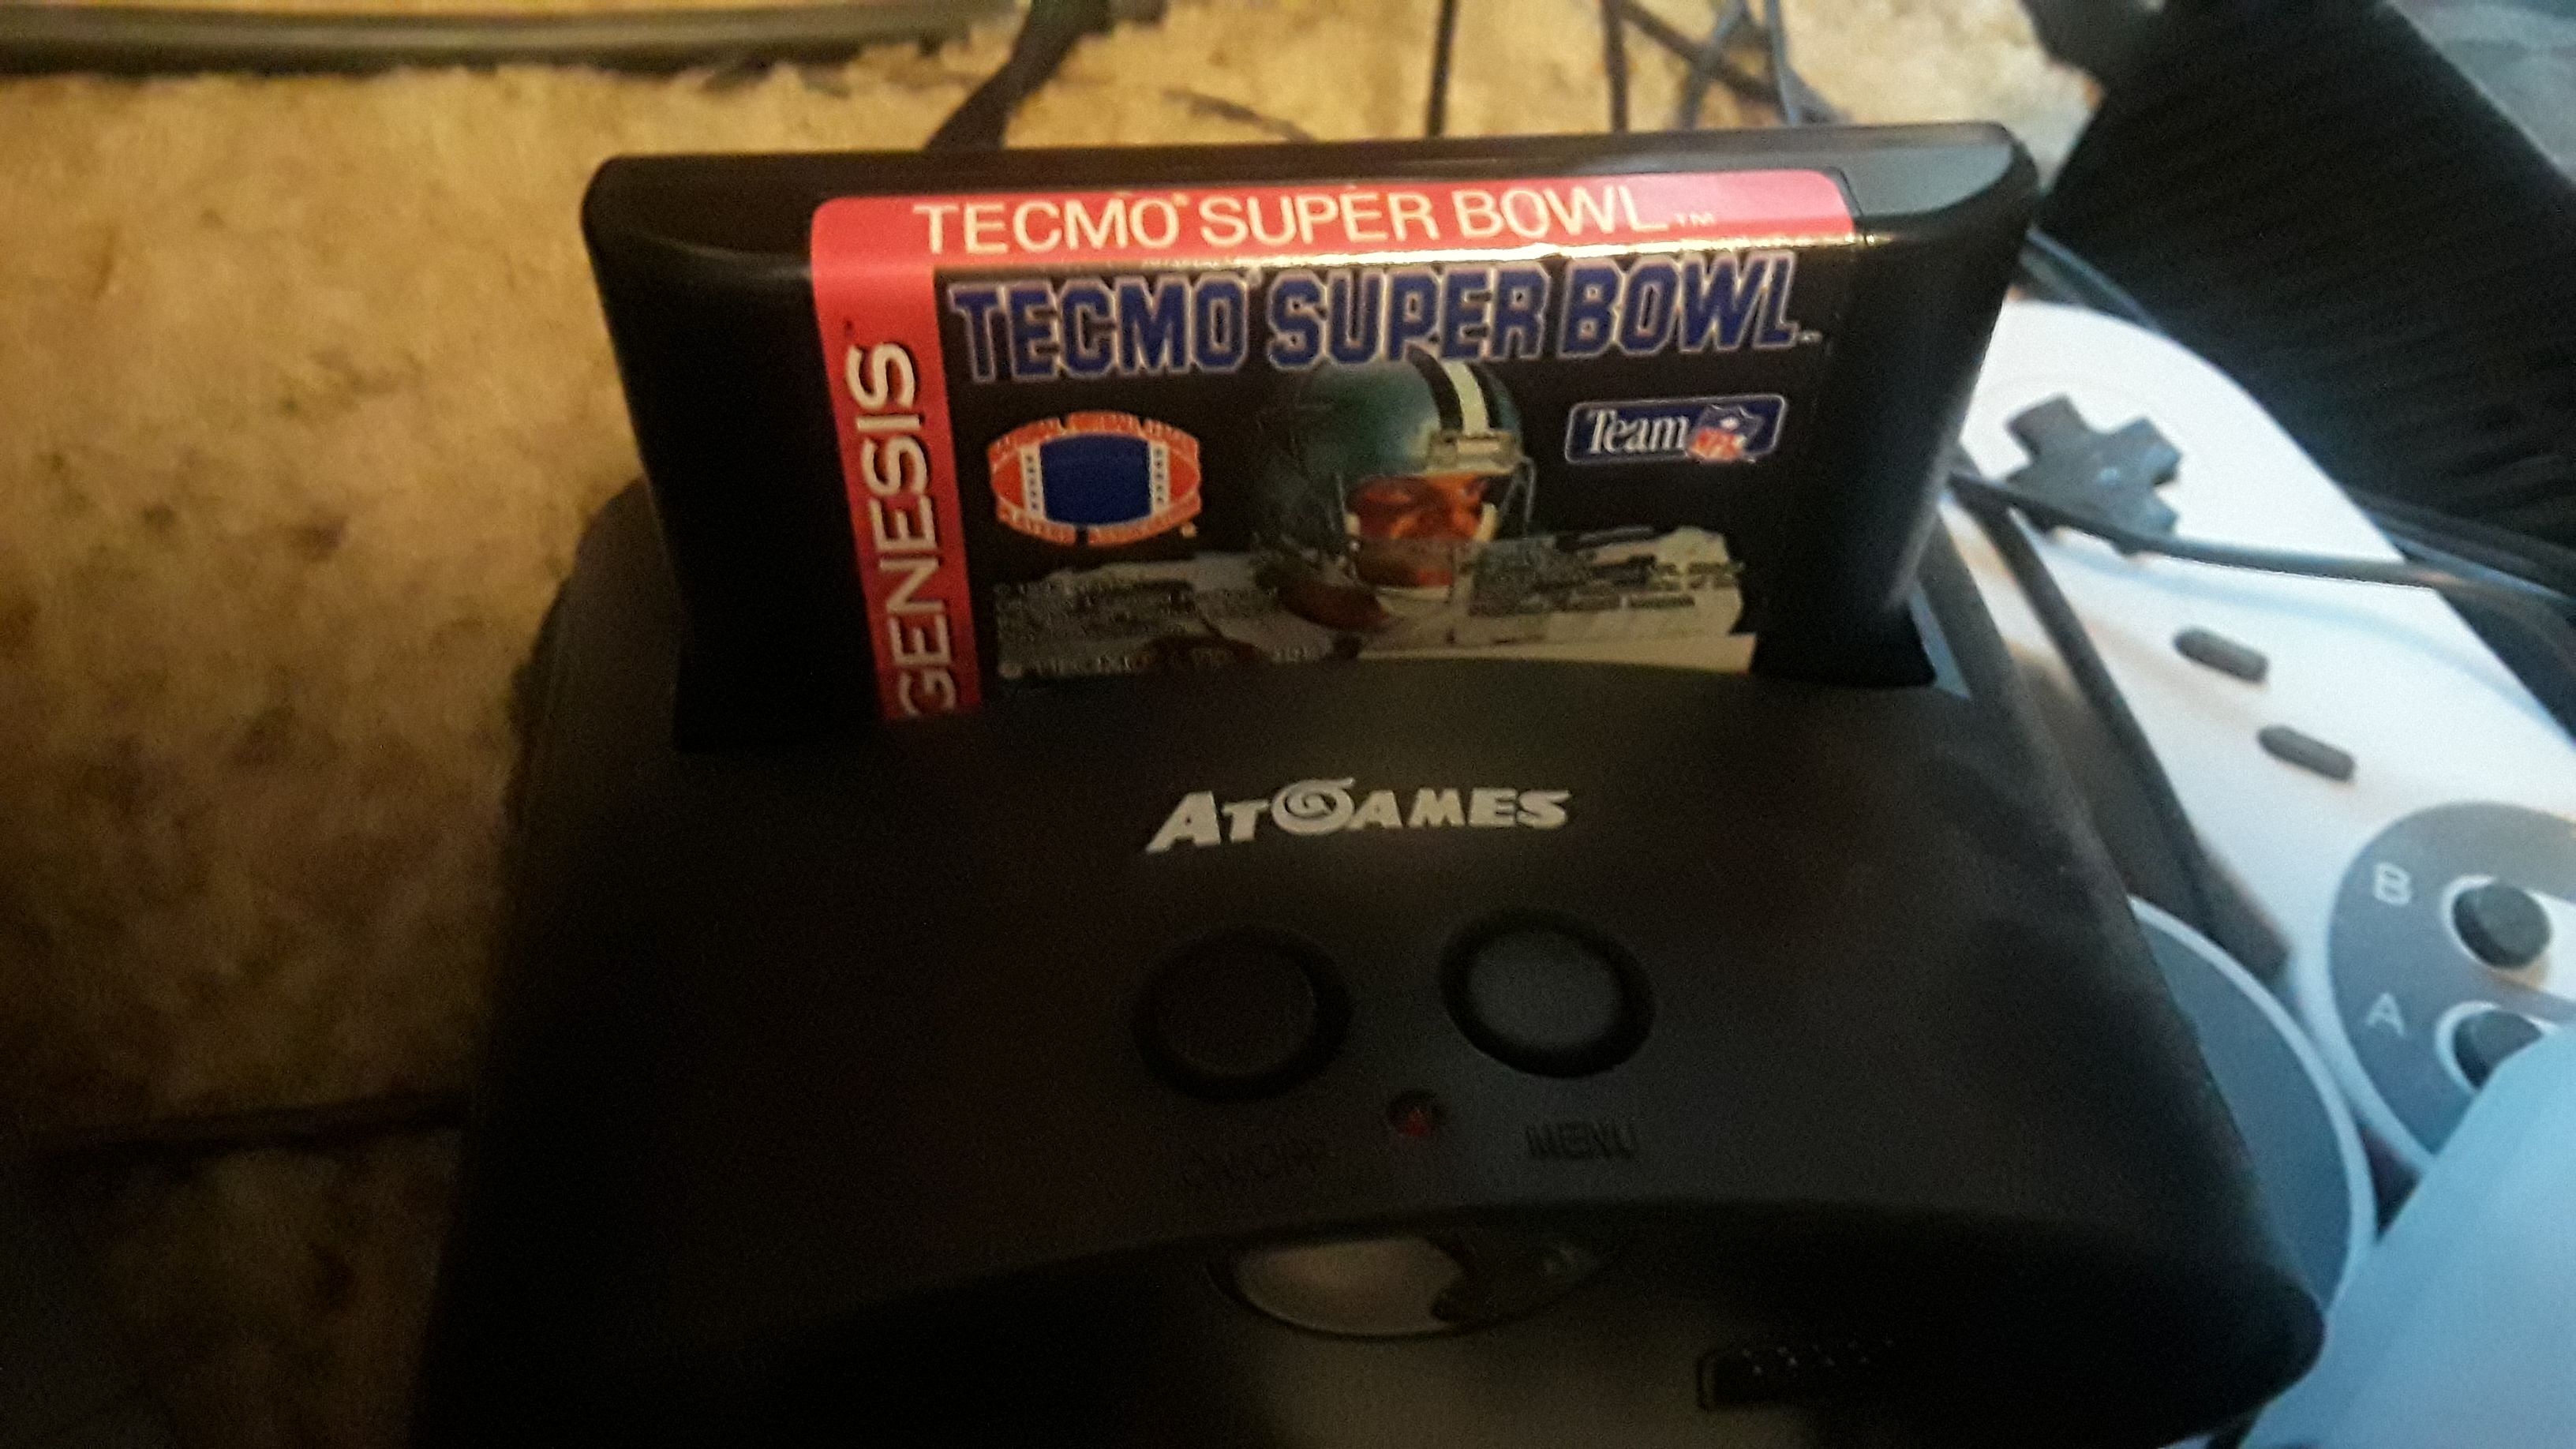 Tecmo Super Bowl [Most Rushing Attempts] [Pro Bowl] 66 points